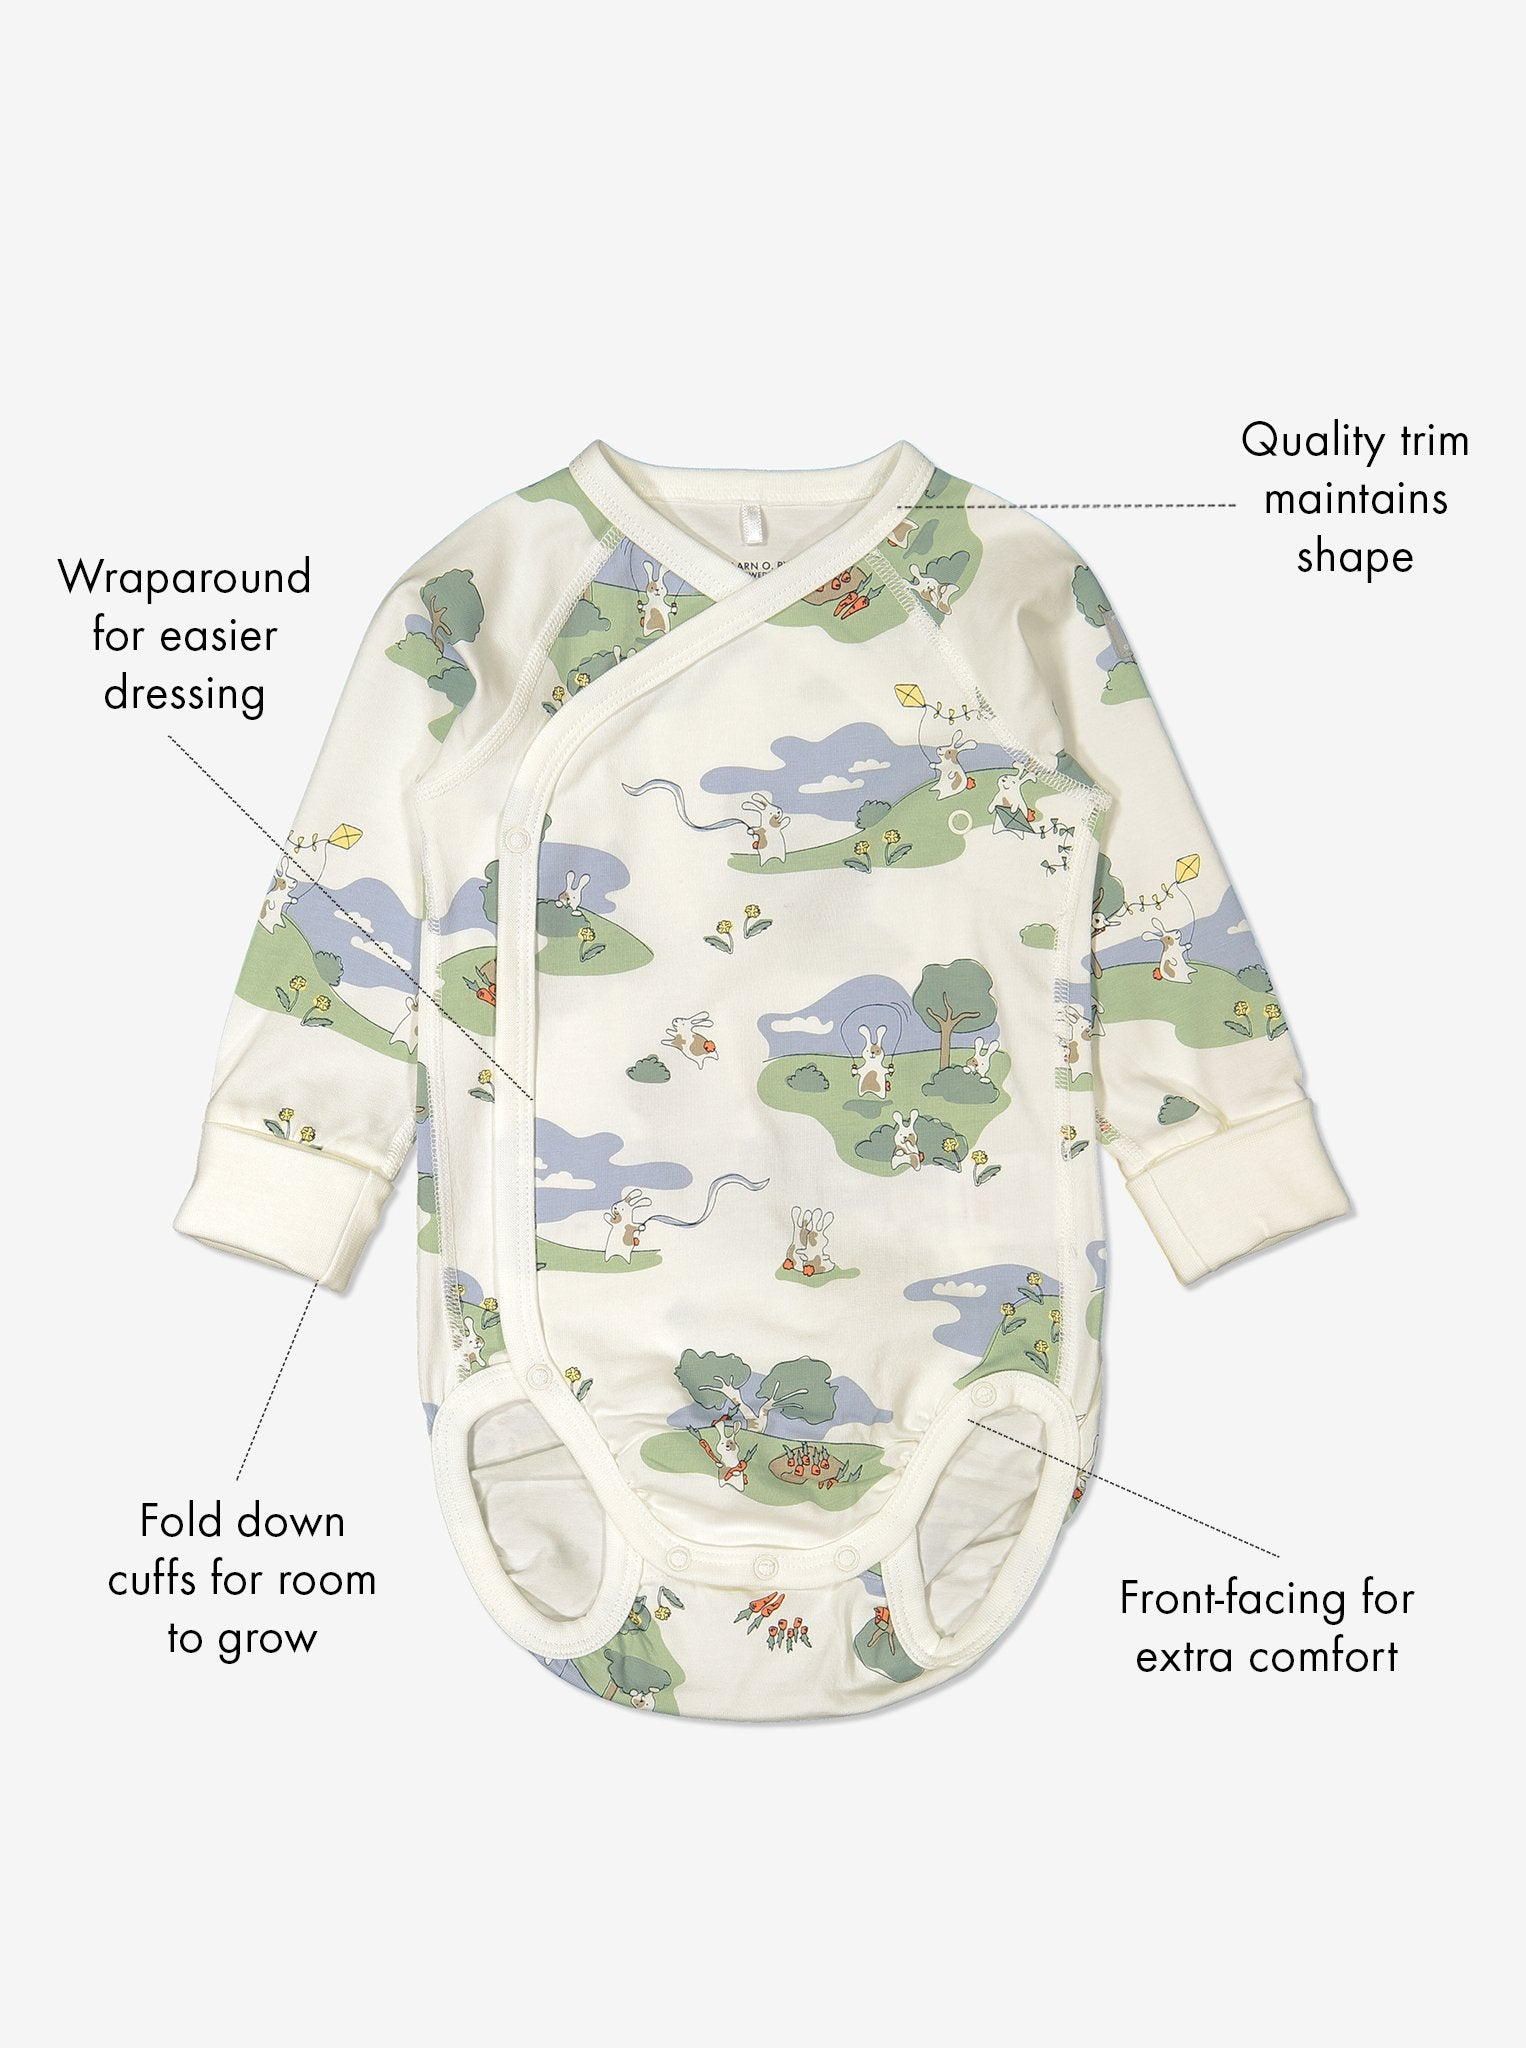 Organic cotton long sleeve babygrow in a unisex bunny print with text labels shown on the sides